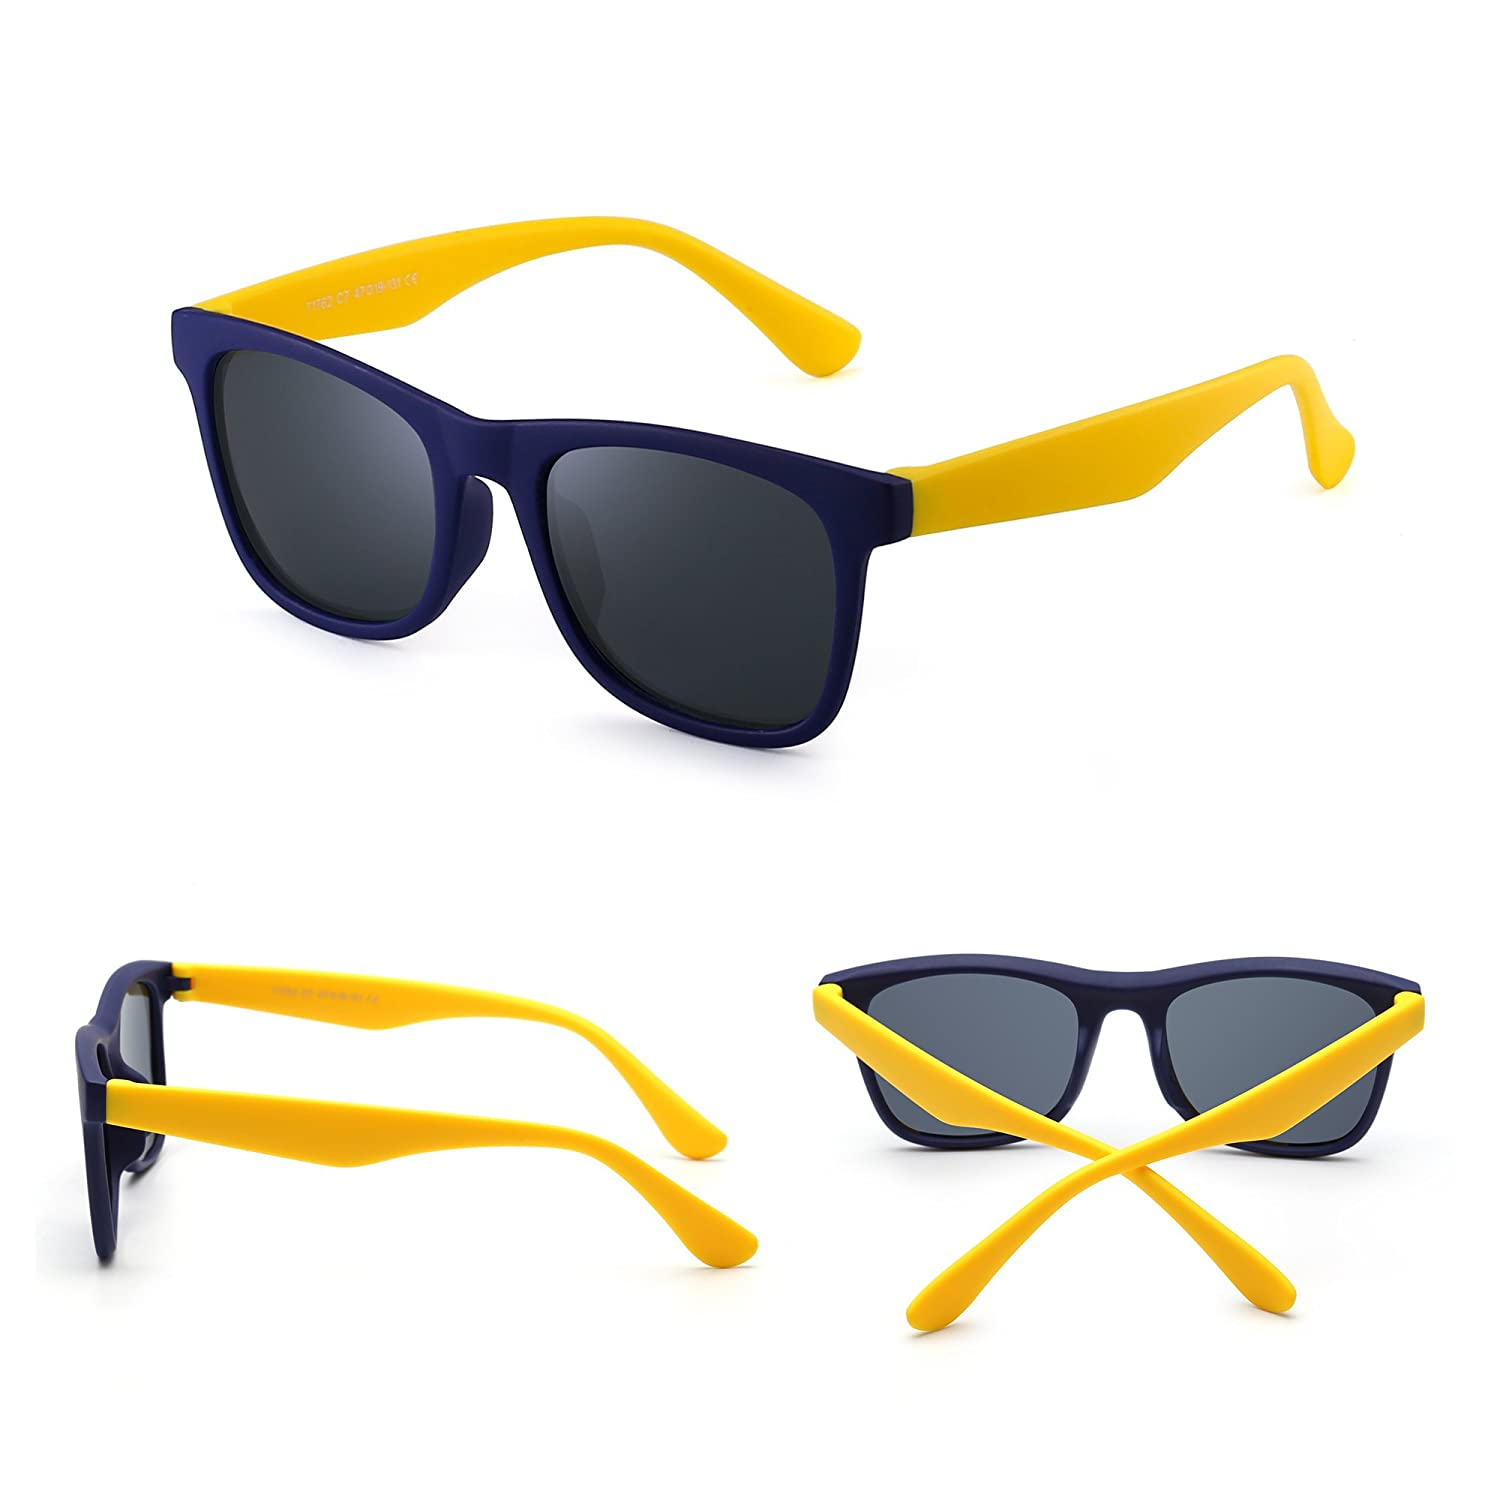 98988a7a3a77 Polarized Kids Sunglasses Rubber Boys Girls Children Flexible Glasses Age 3- 12 (Blue Yellow/Polarized Grey): Amazon.ca: Clothing & Accessories